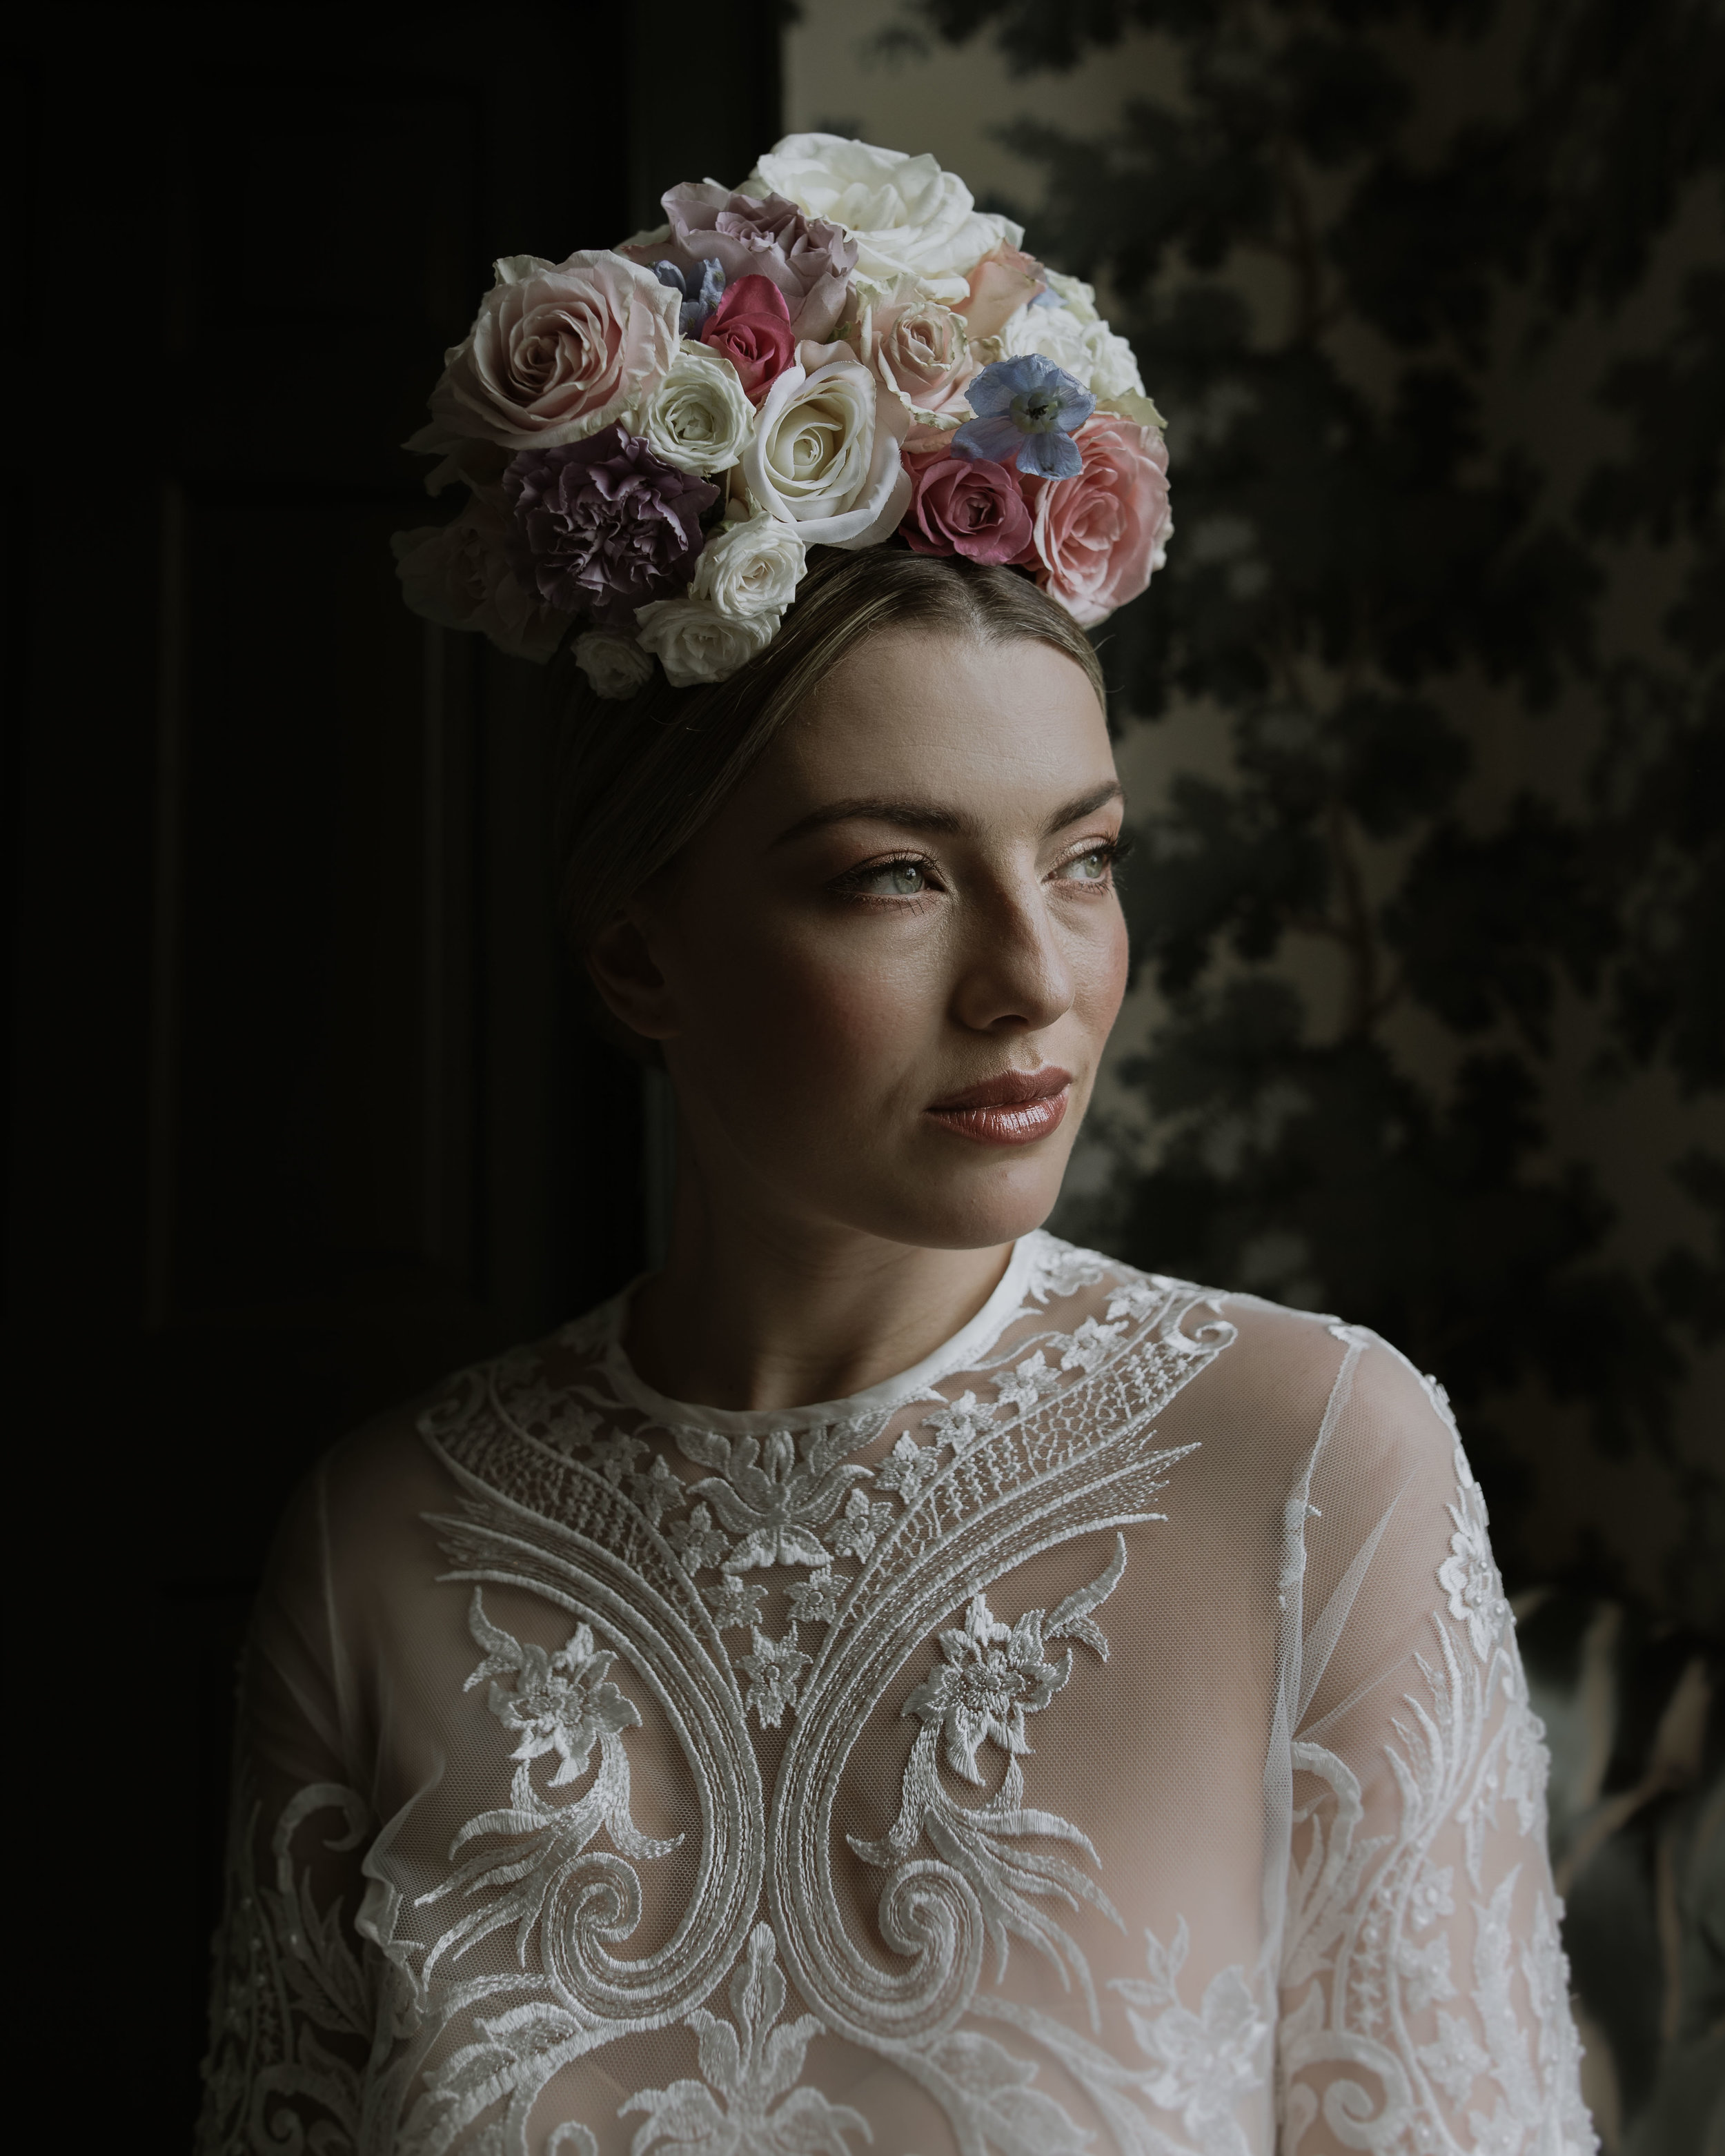 Amazing dress and flower head piece by window light